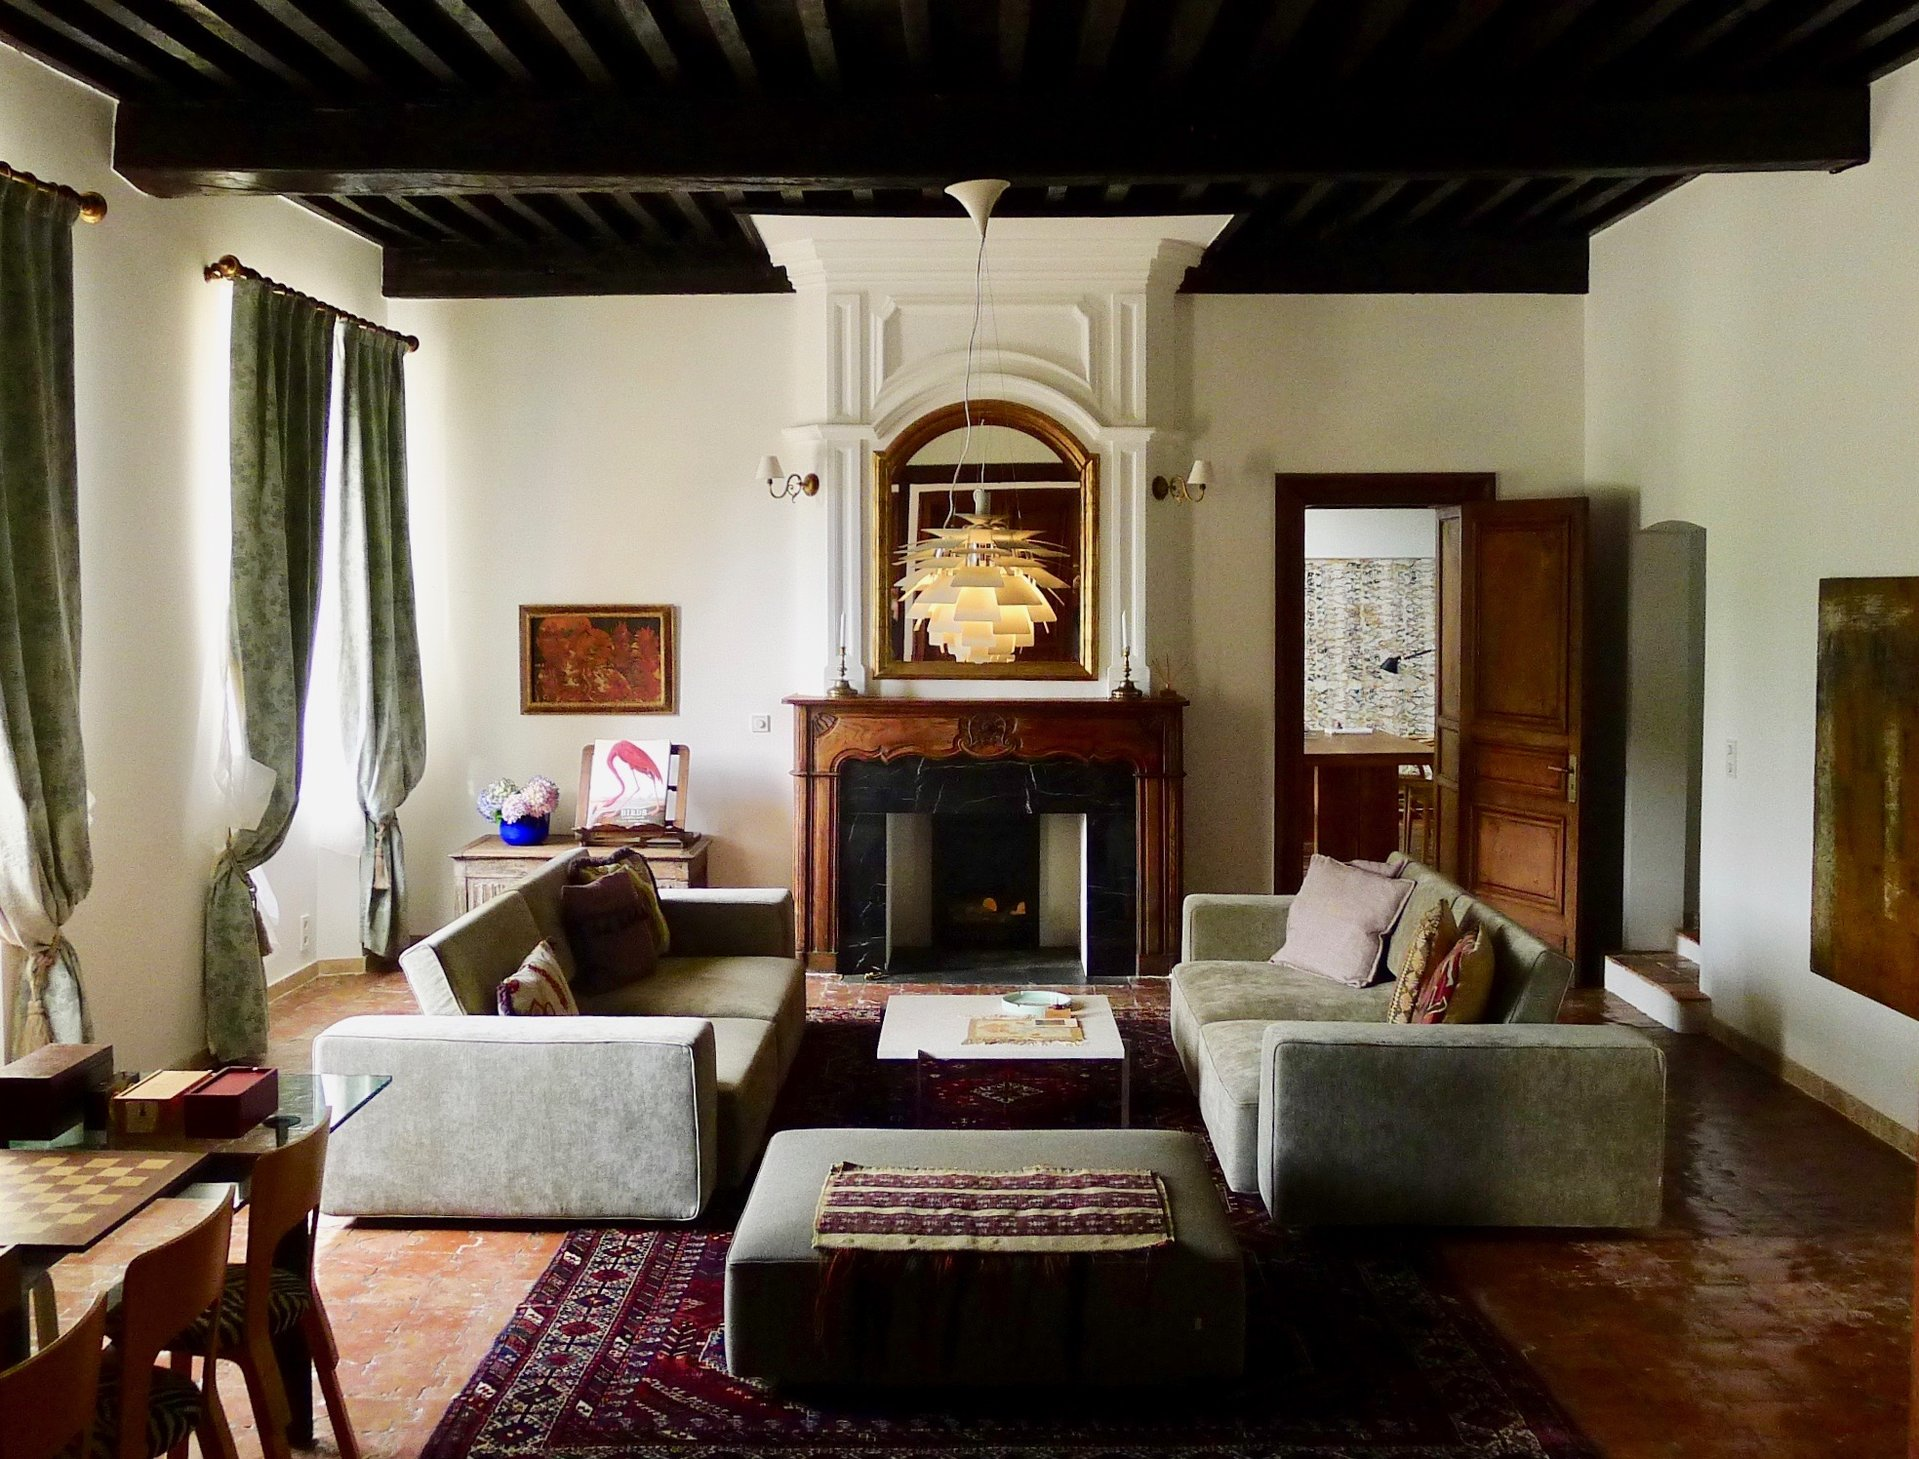 Superbly renovated 17th century château with pool and 10 hectares of parkland